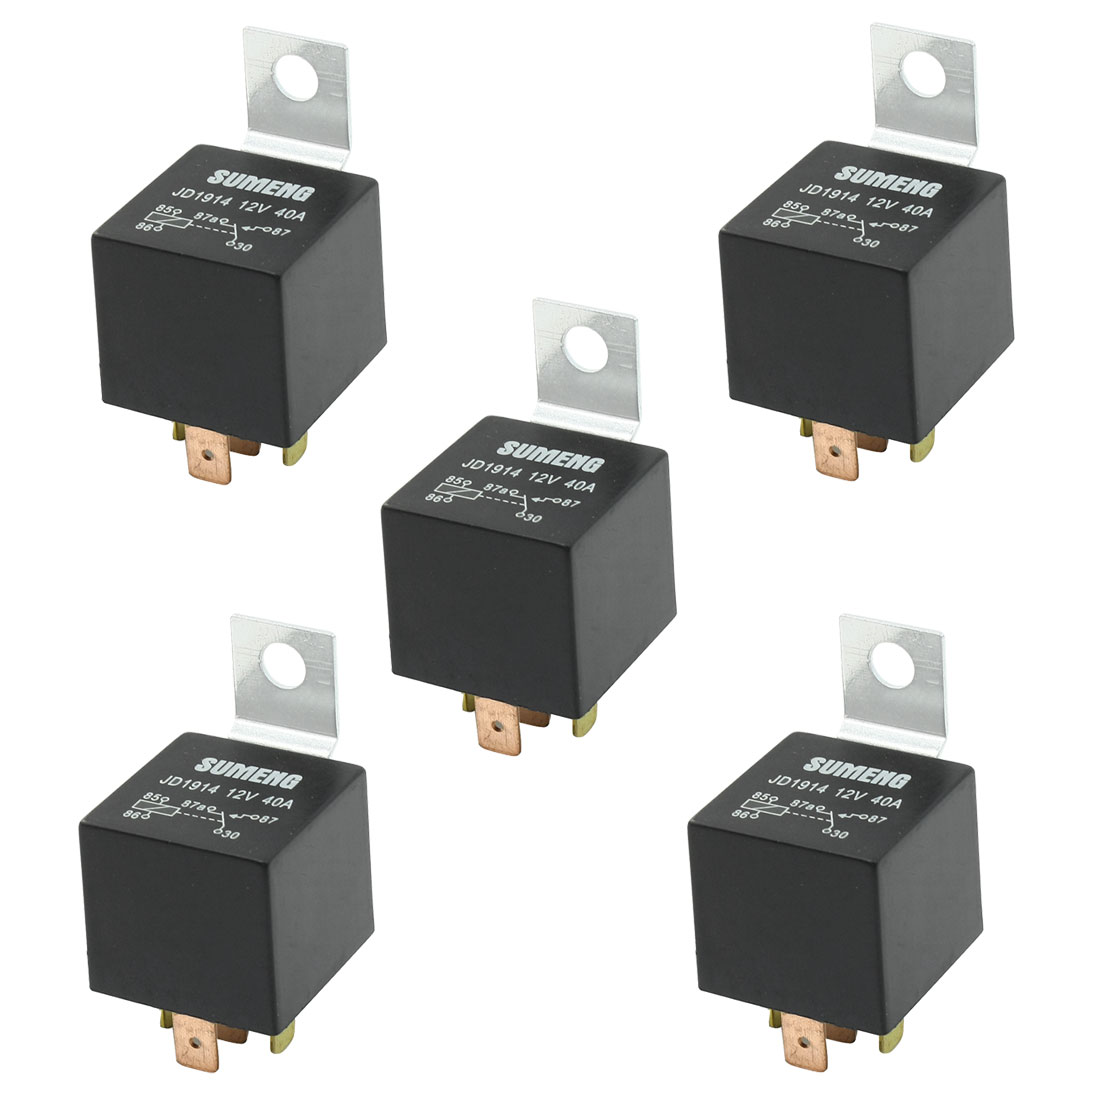 DC 12V 40A 1NO 1NC SPDT 5 Pin Male Plug Truck Car Power Relay 5 Pcs